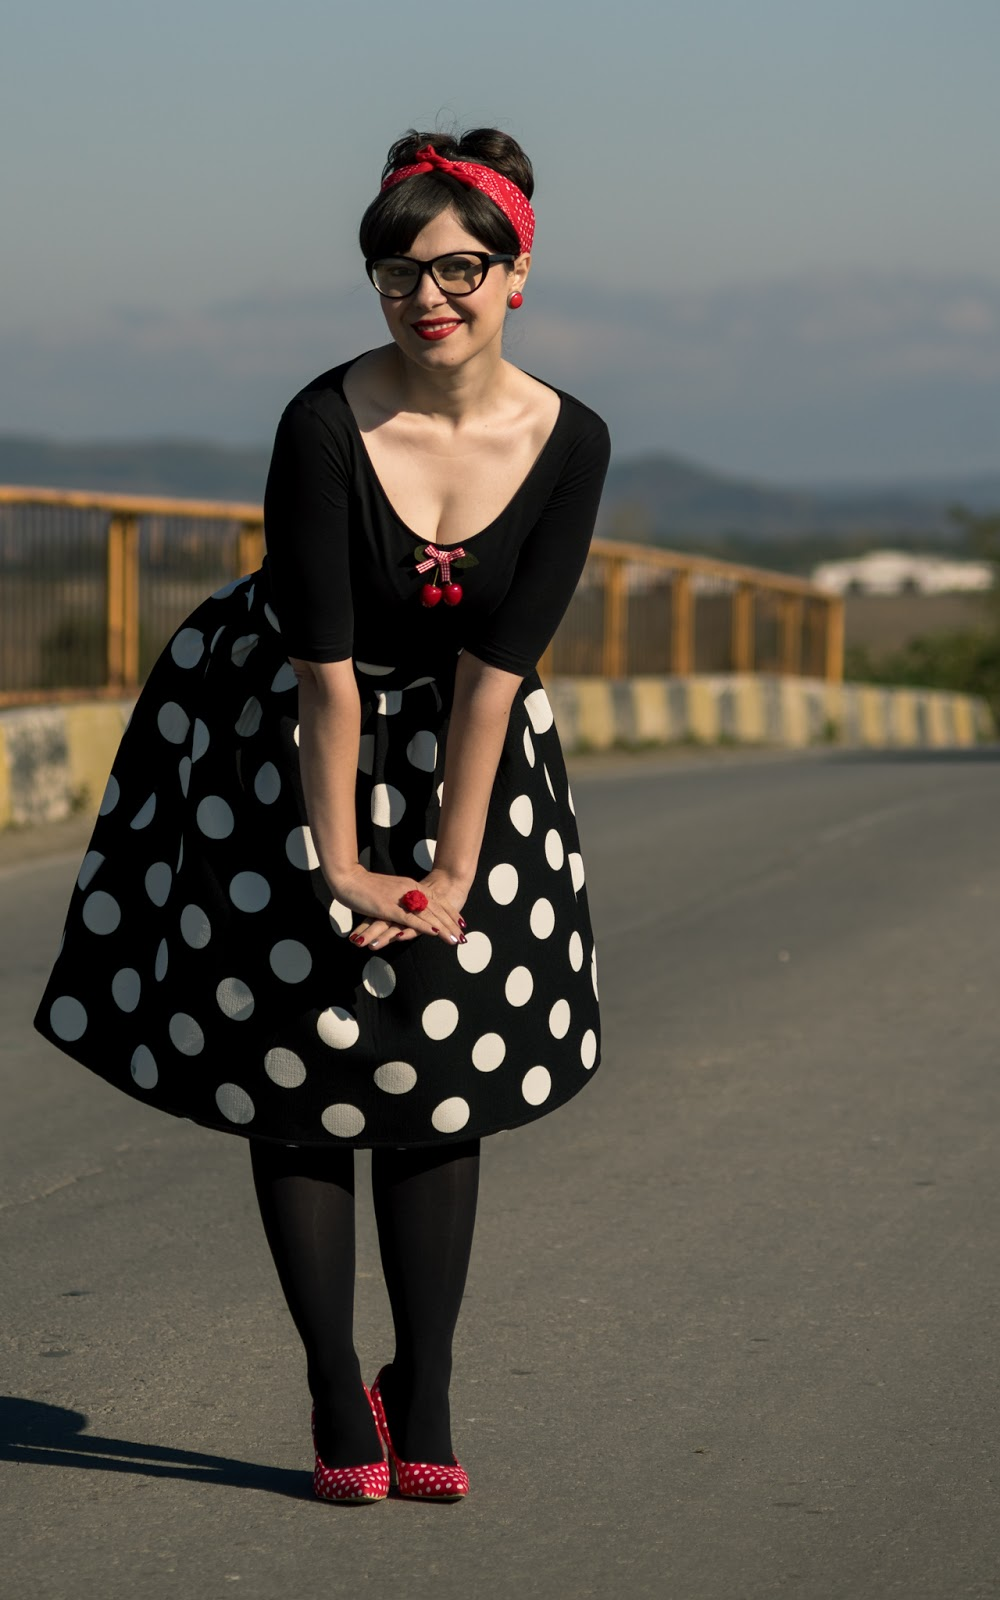 Pin Up Costume Ideas - Be the life of the party!